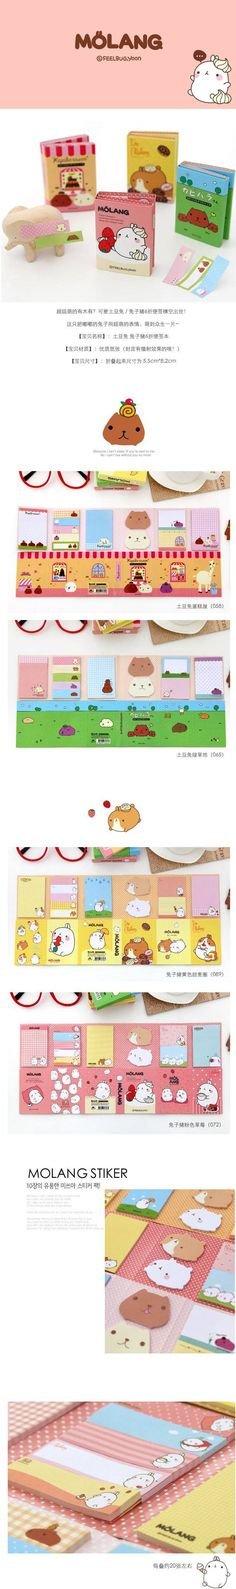 Free Shipping Kawaii Molang Rabbit Memo Notepad,Note Book&Memo Pad,Sticky Notes Memo Set,Gift Stationery Wholesale-inMemo Pads from Office & School Supplies on Aliexpress.com | Alibaba Group